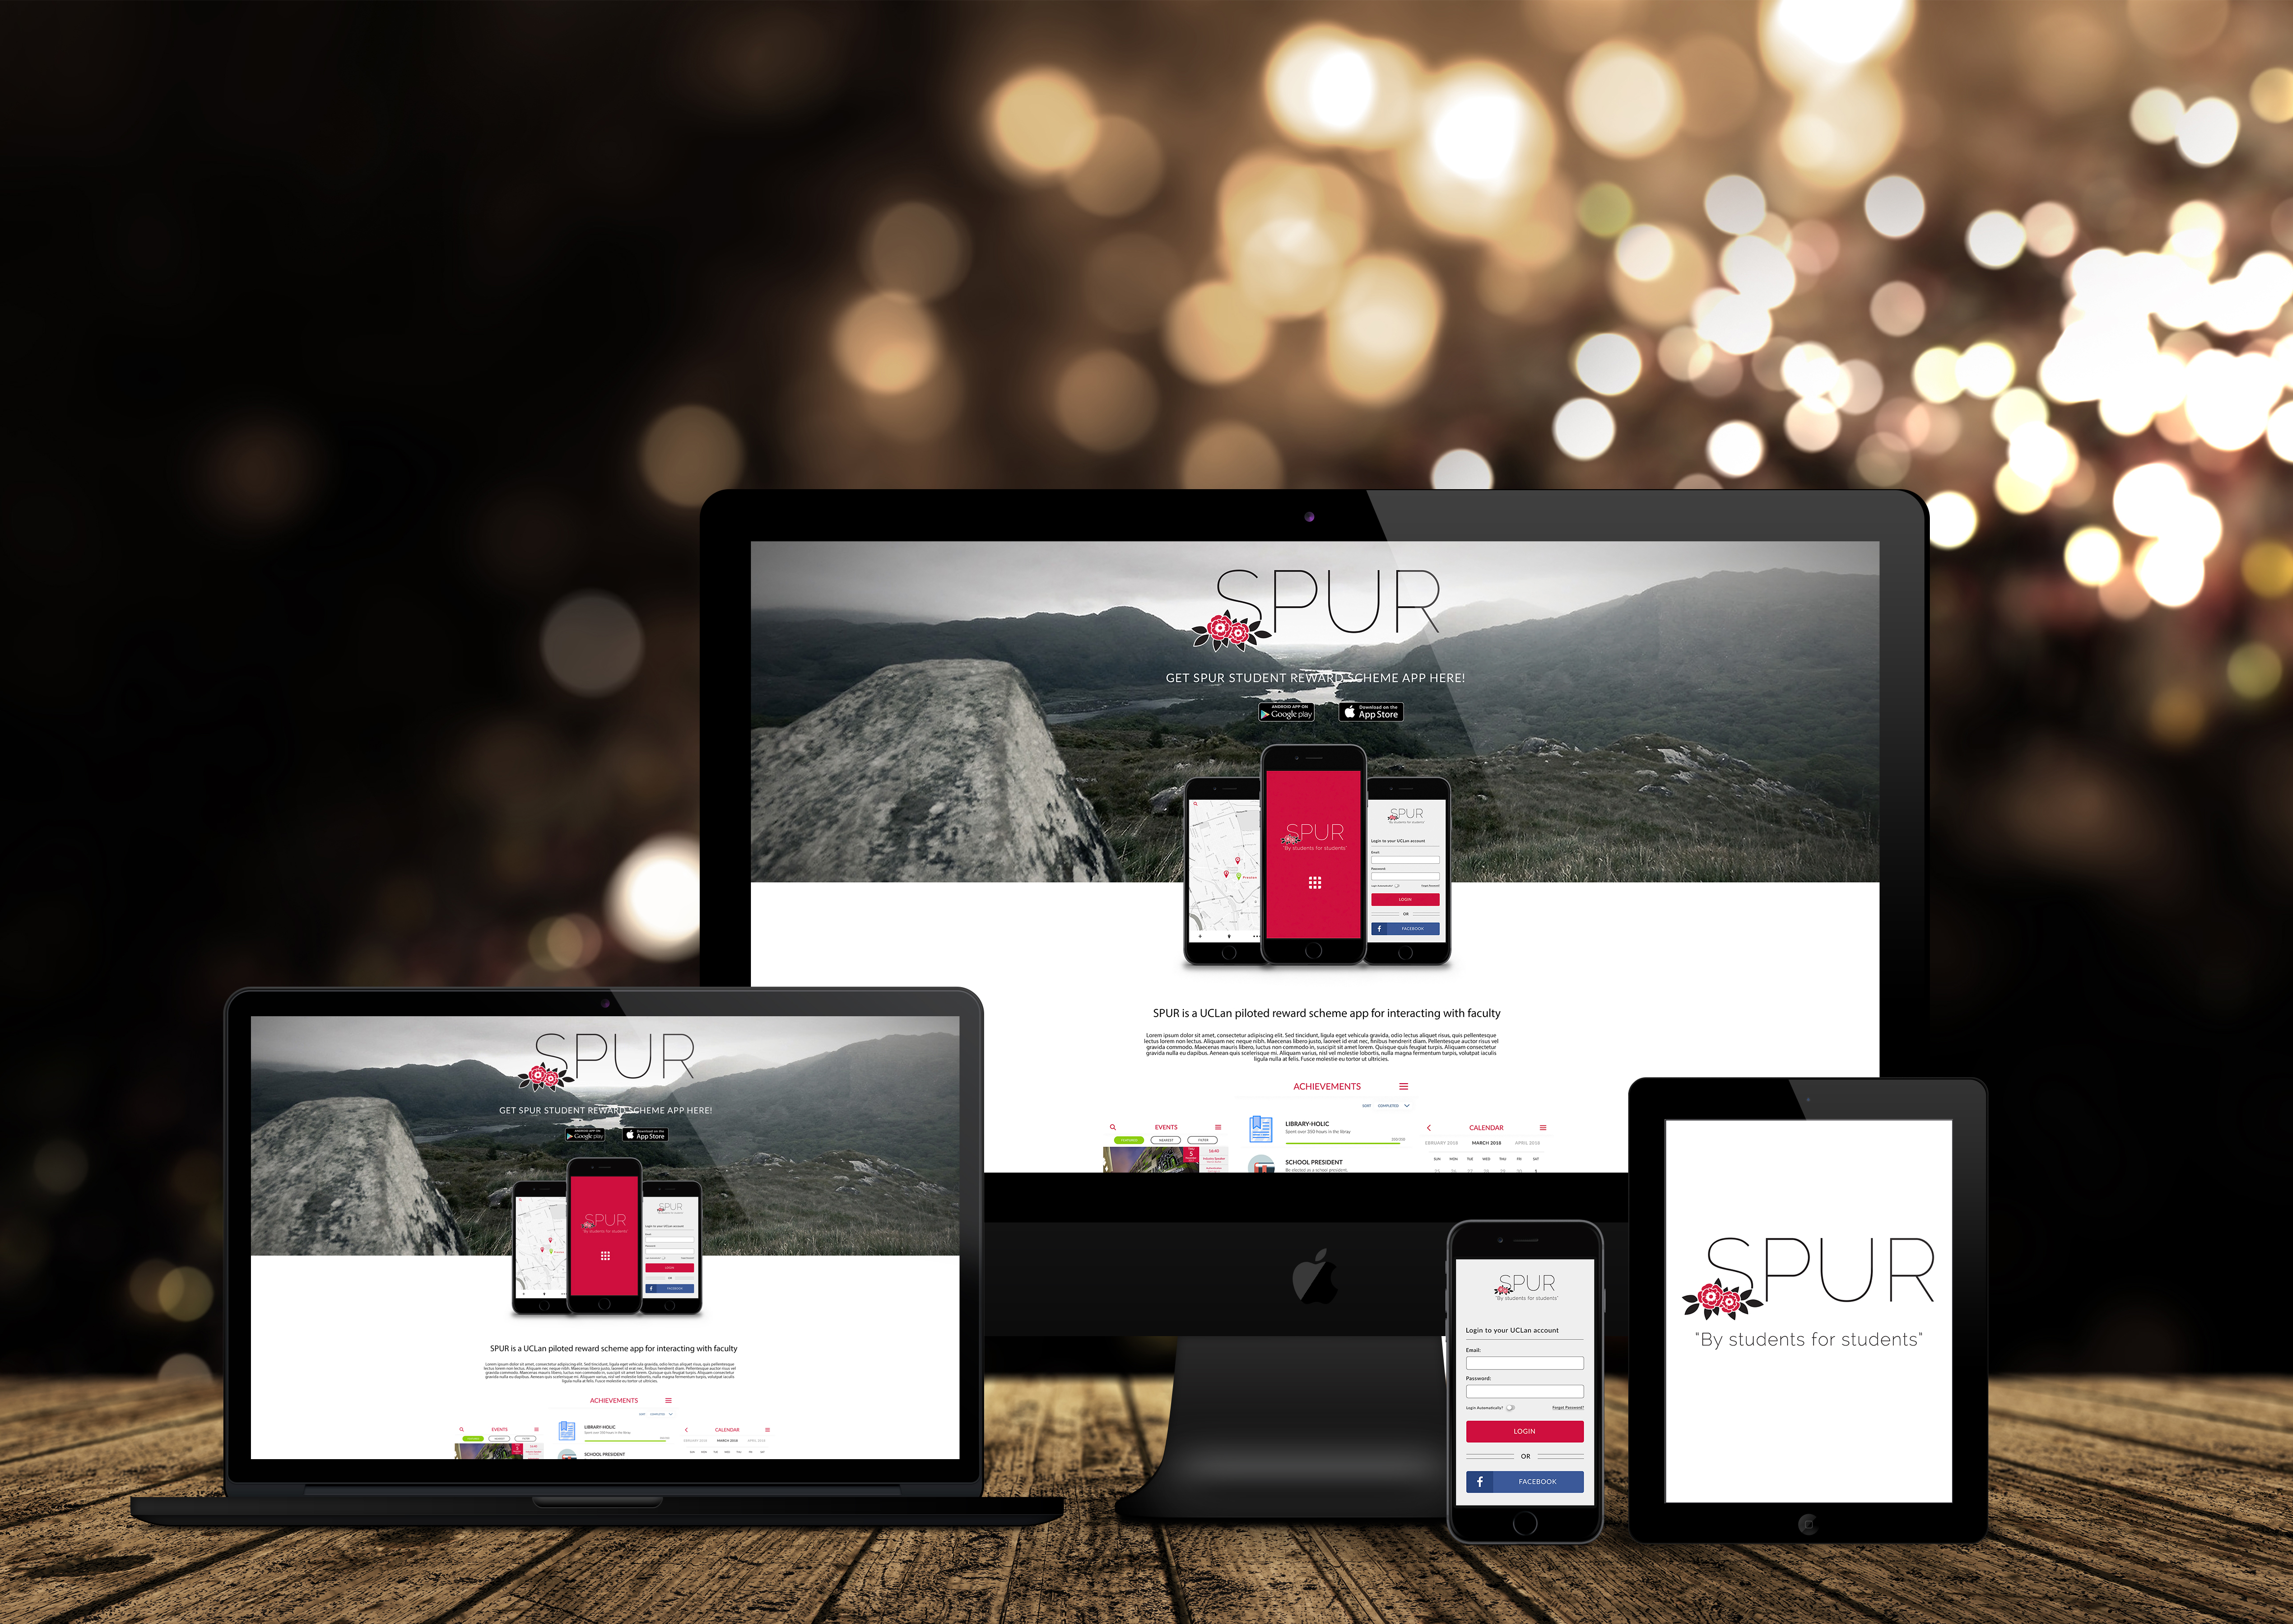 Mockups of action and launch page. Image